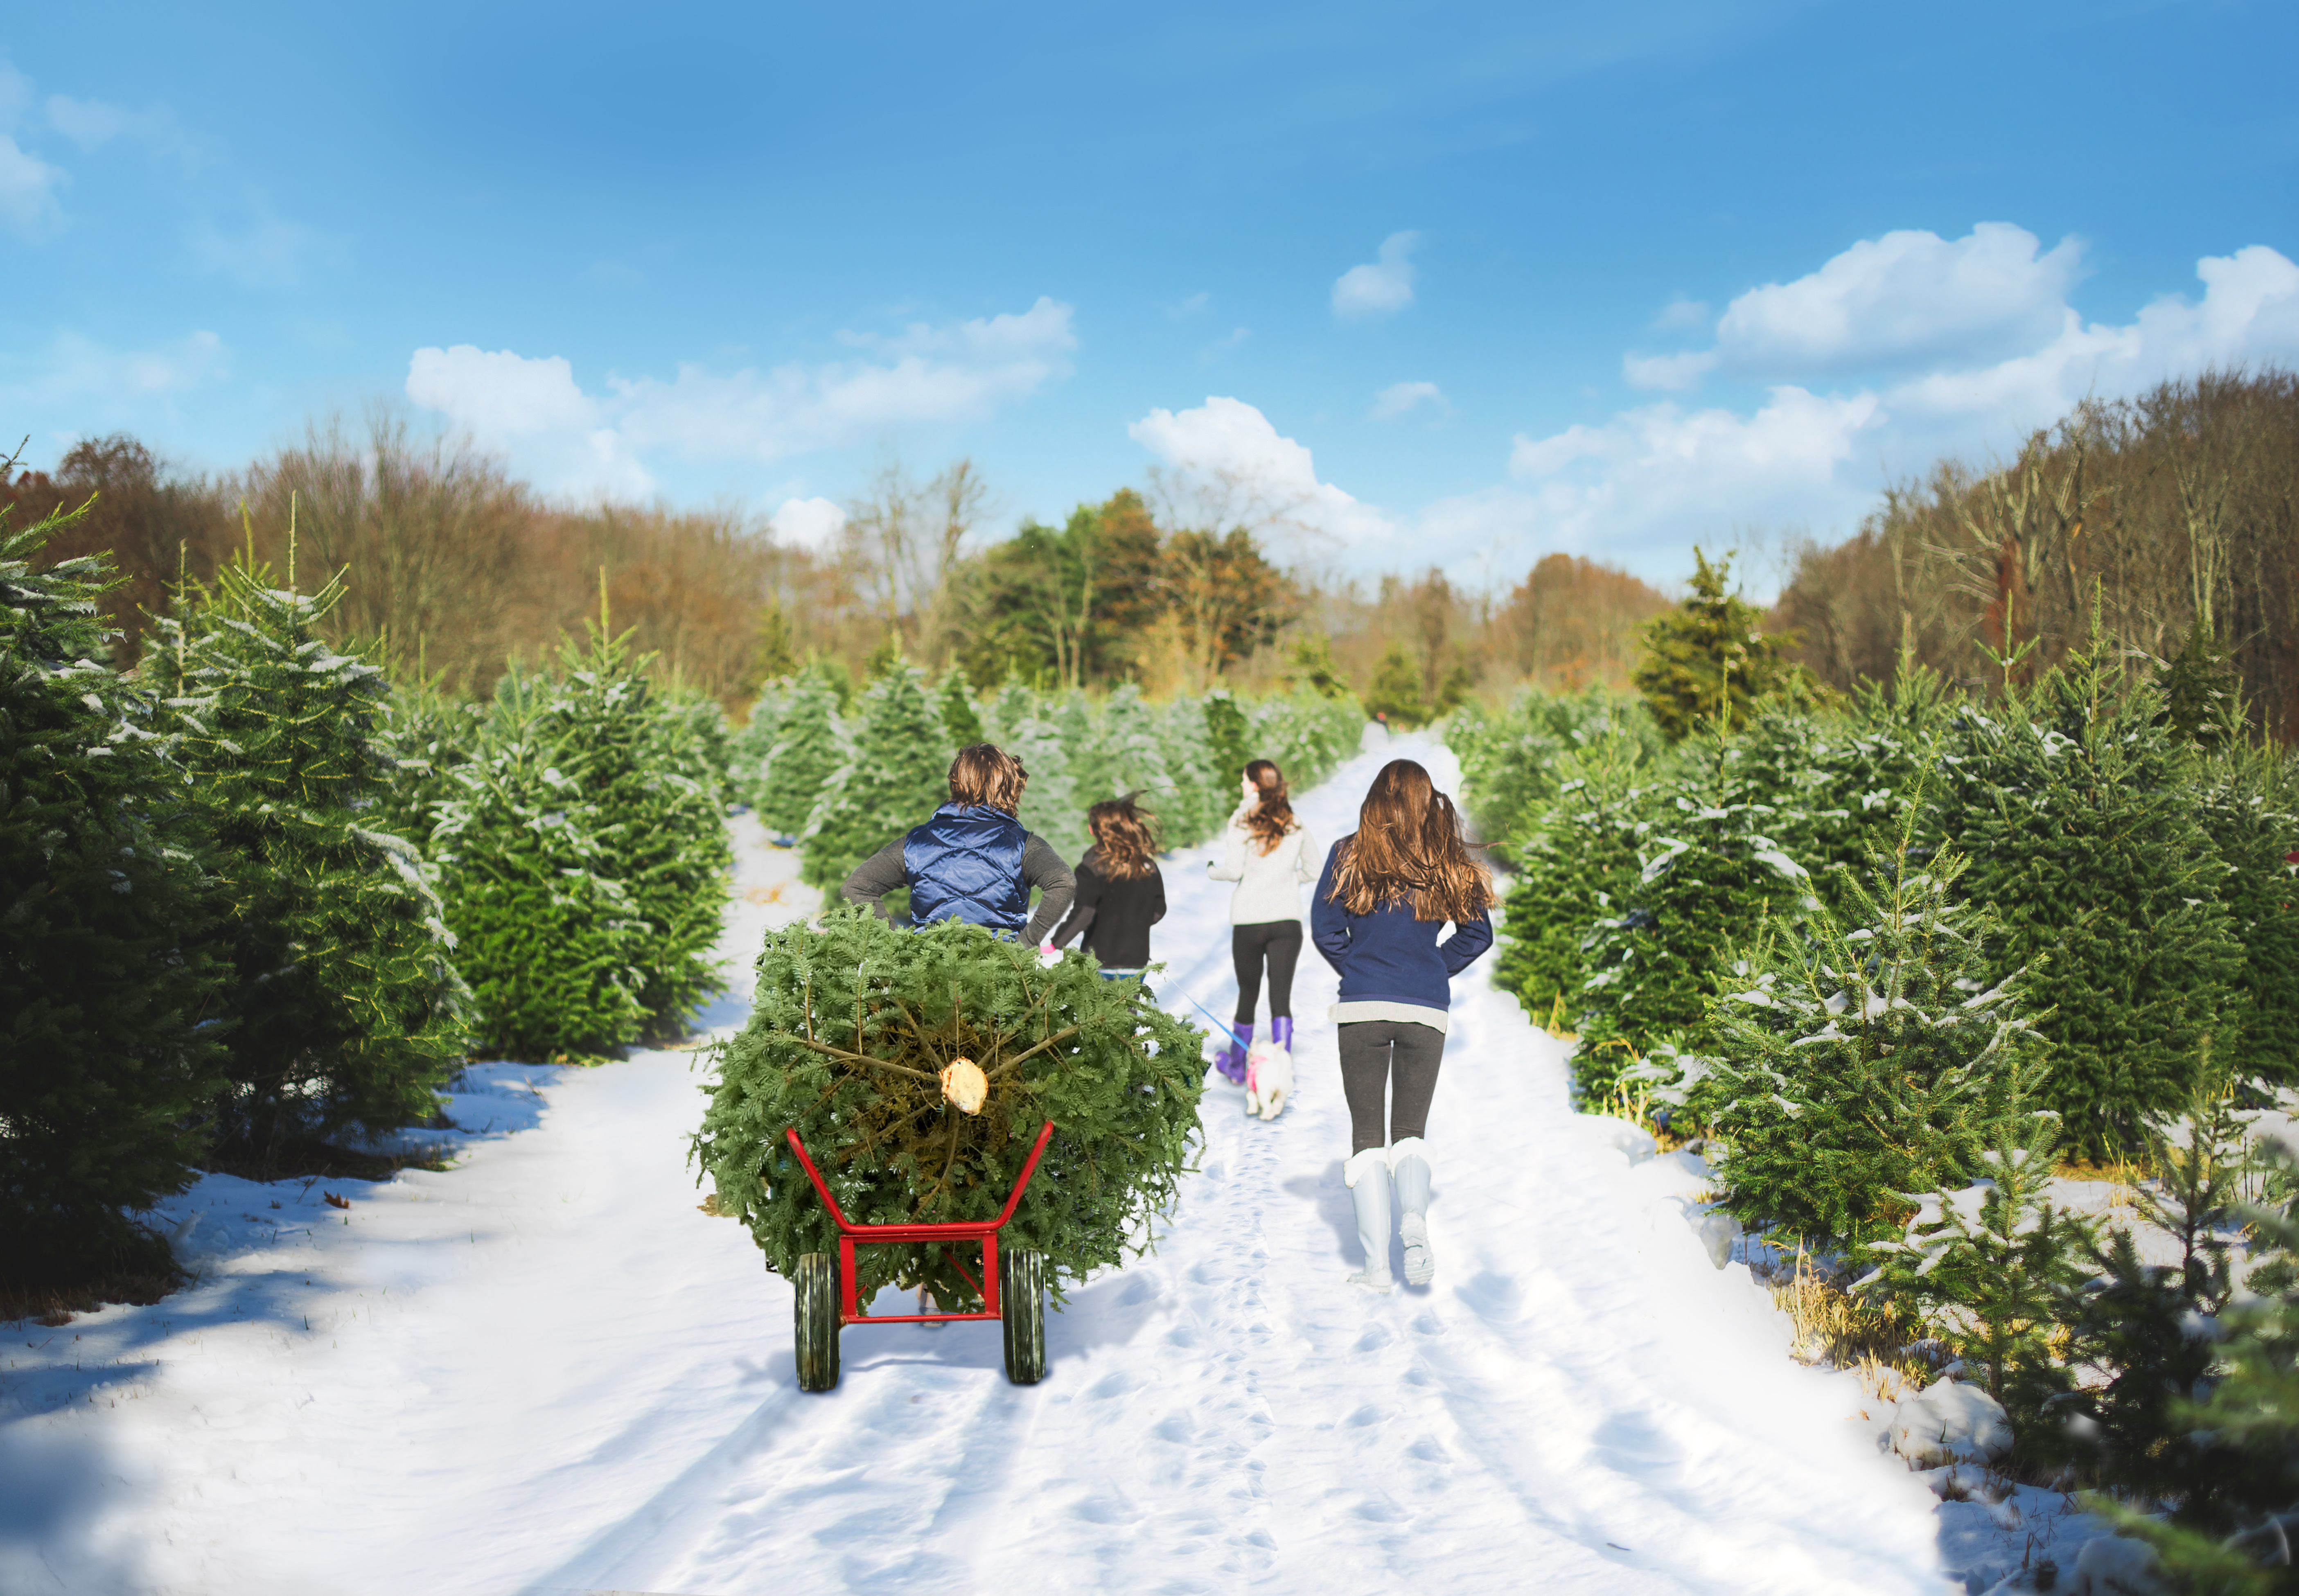 Christmas Tree Farm Photos.Pick Your Own Christmas Trees In Ct Visit Ct